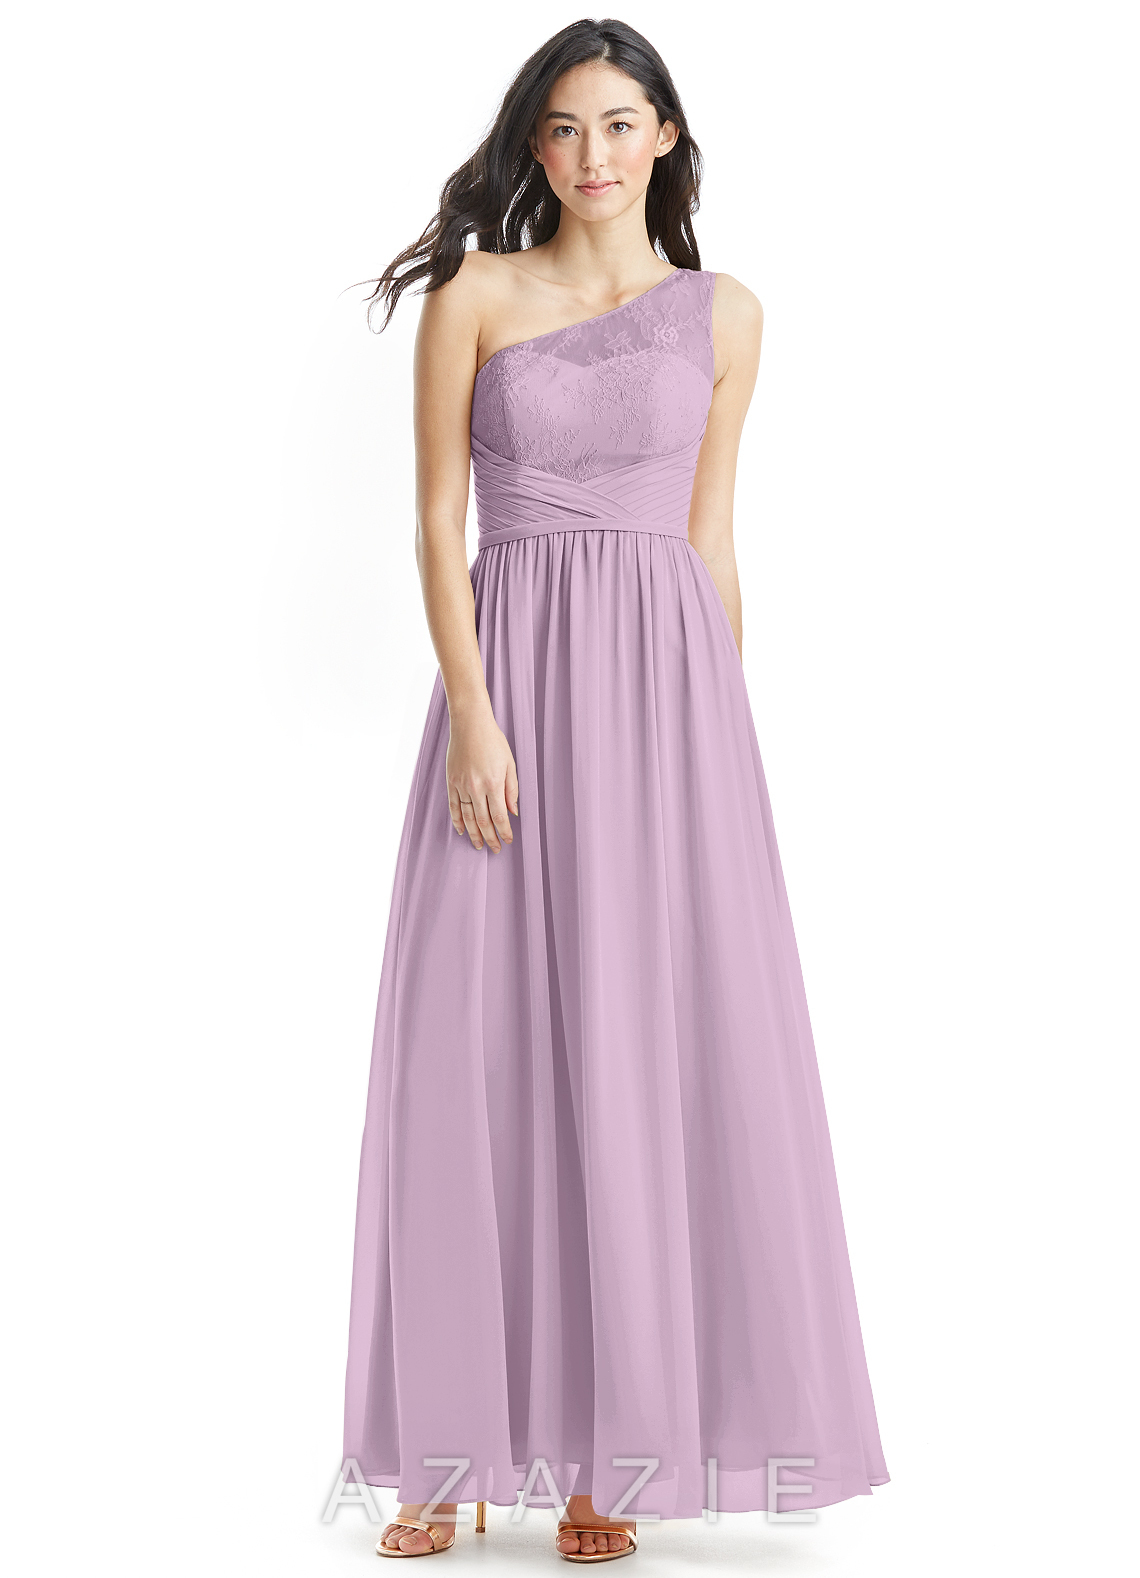 Azazie Anastasia Bridesmaid Dress | Azazie